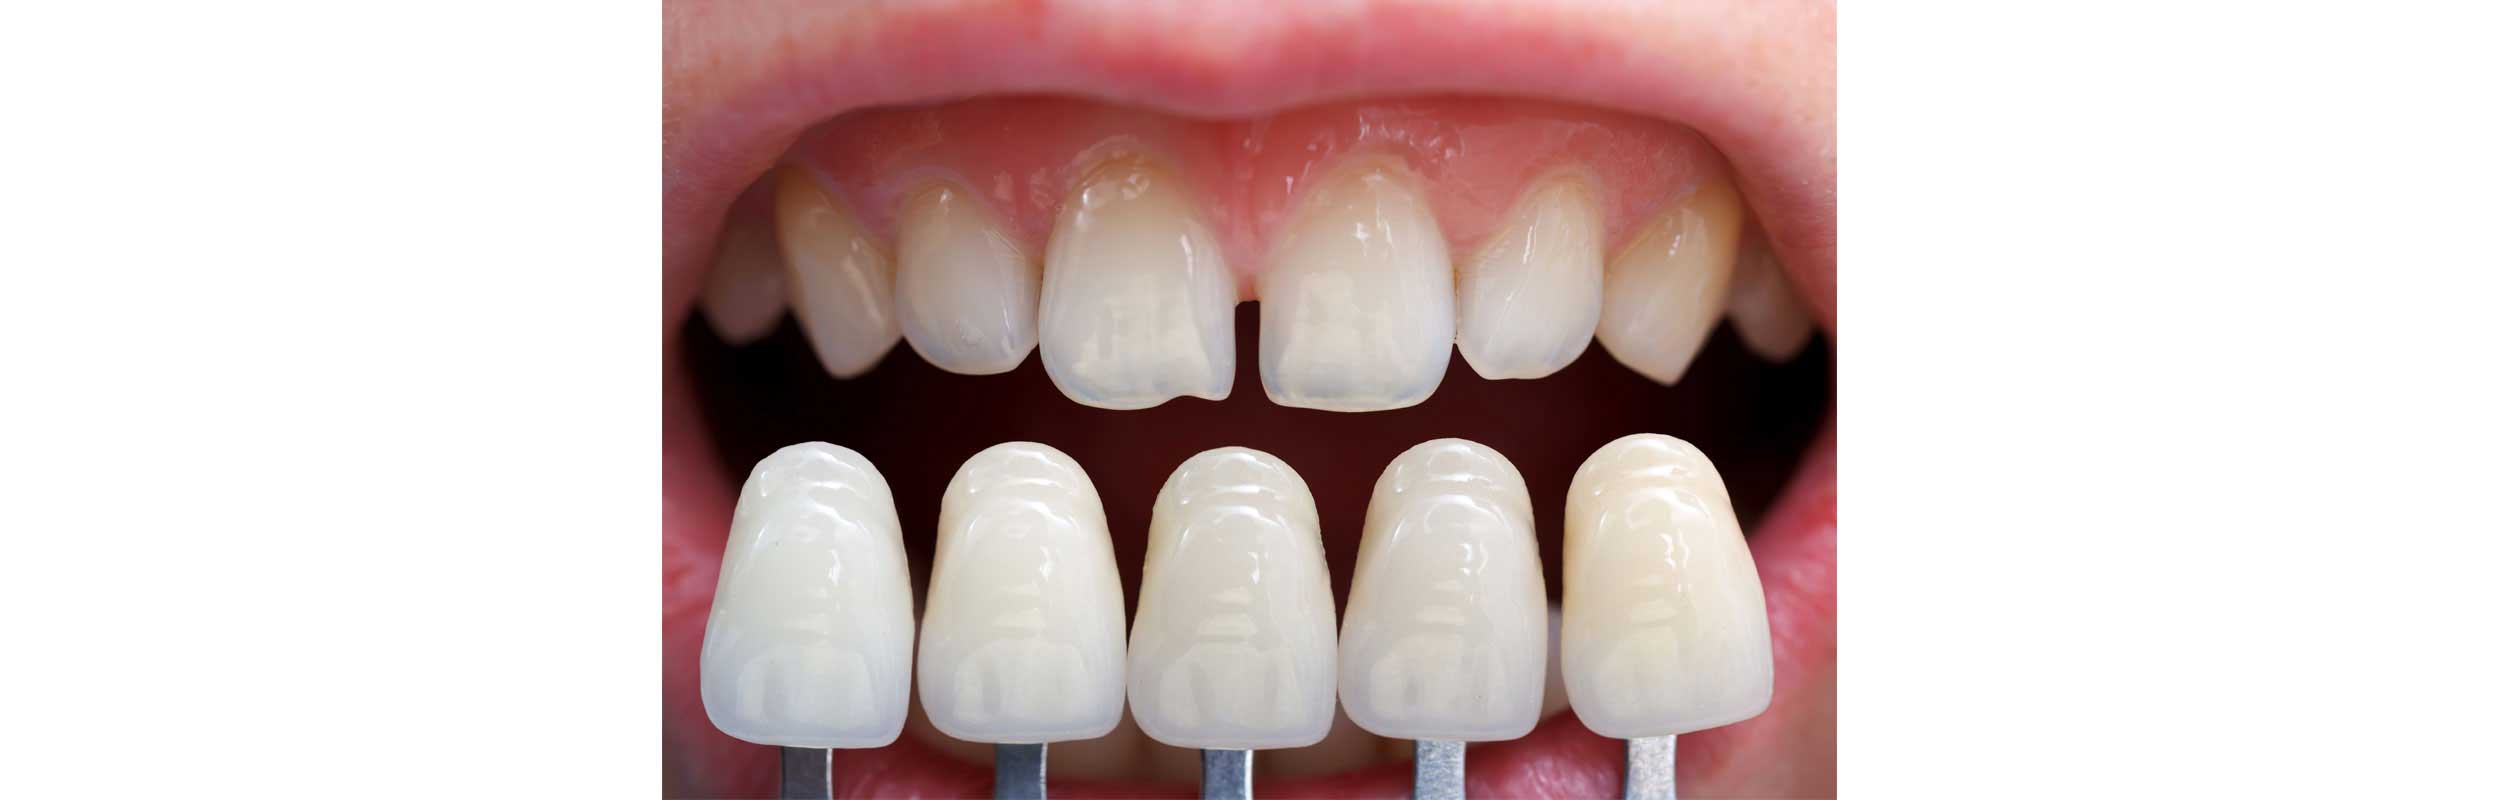 Porcelain Veneers - Nashville, TN